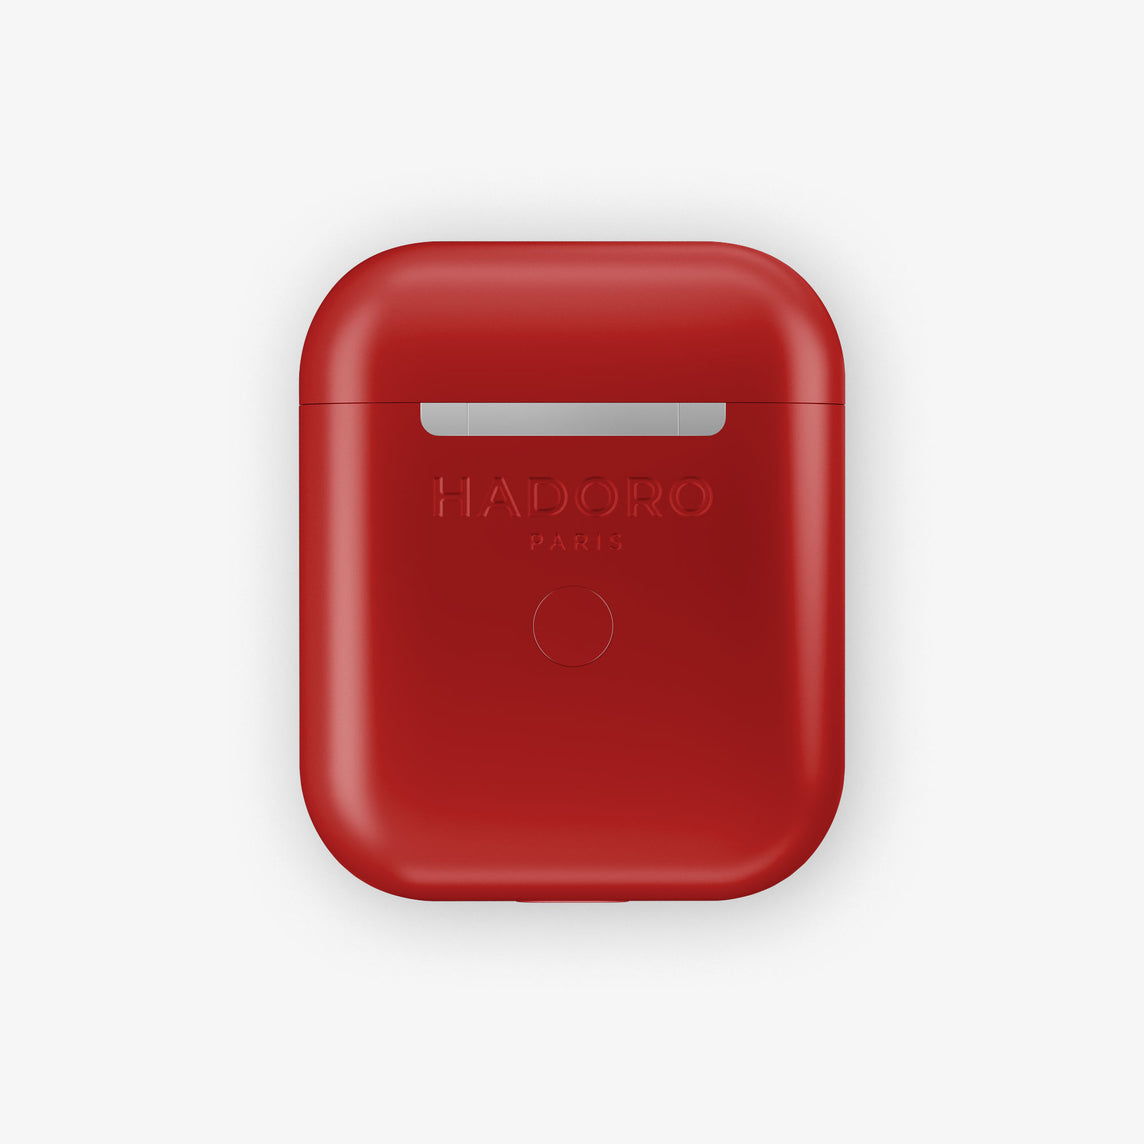 Hadoro AirPods Cherry with Wireless Charging Case | Red Lipstick - Stainless Steel